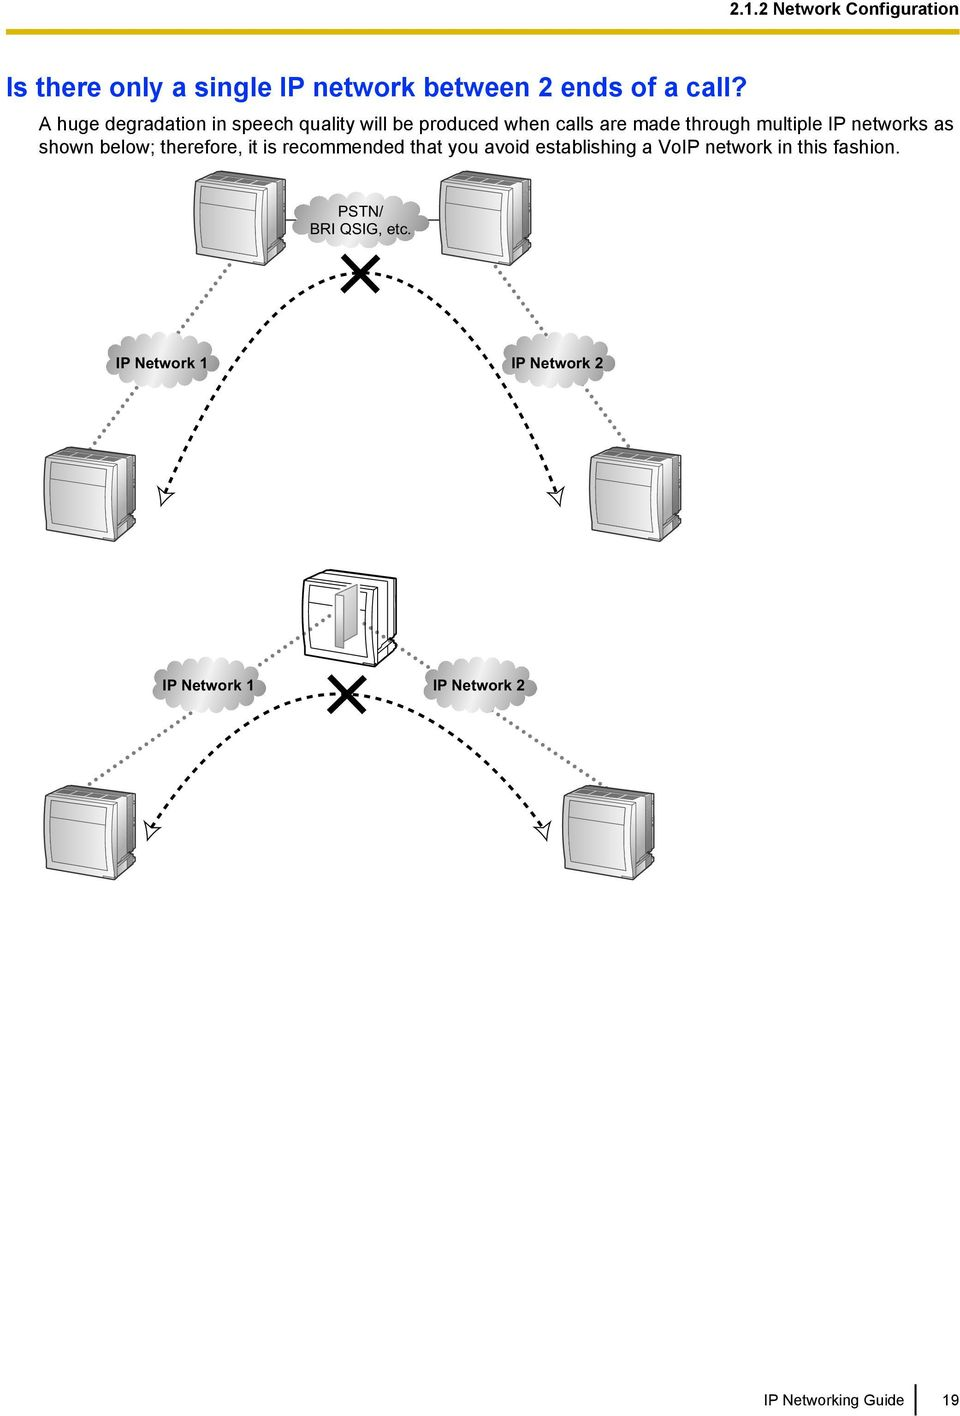 networks as shown below; therefore, it is recommended that you avoid establishing a VoIP network